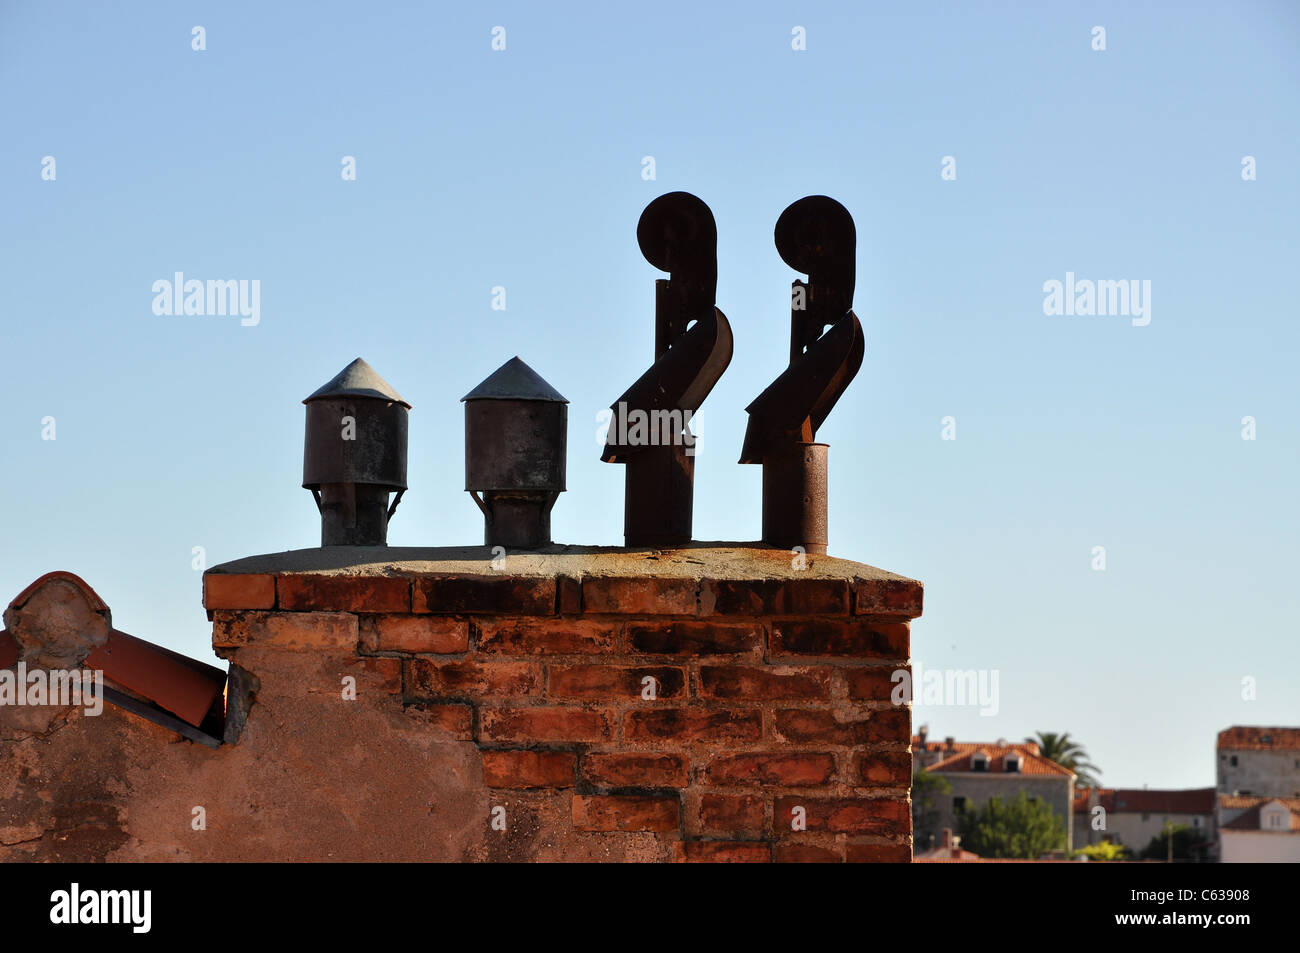 Four exhaust pipes on a brick chimney - Stock Image